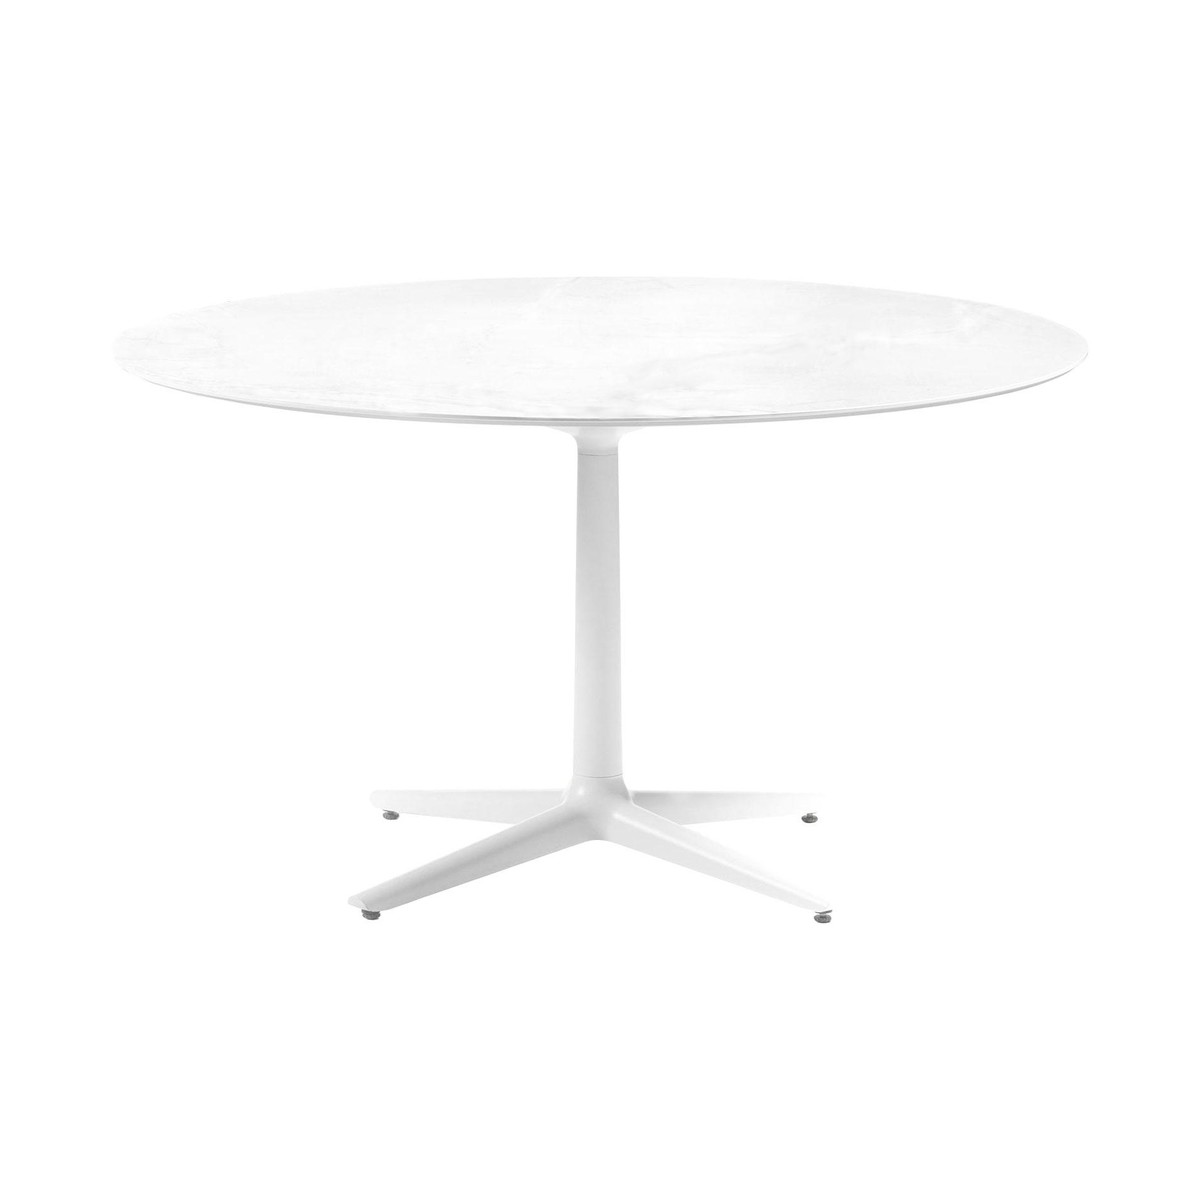 Multiplo Garden Table Round Kartell Ambientedirect Com